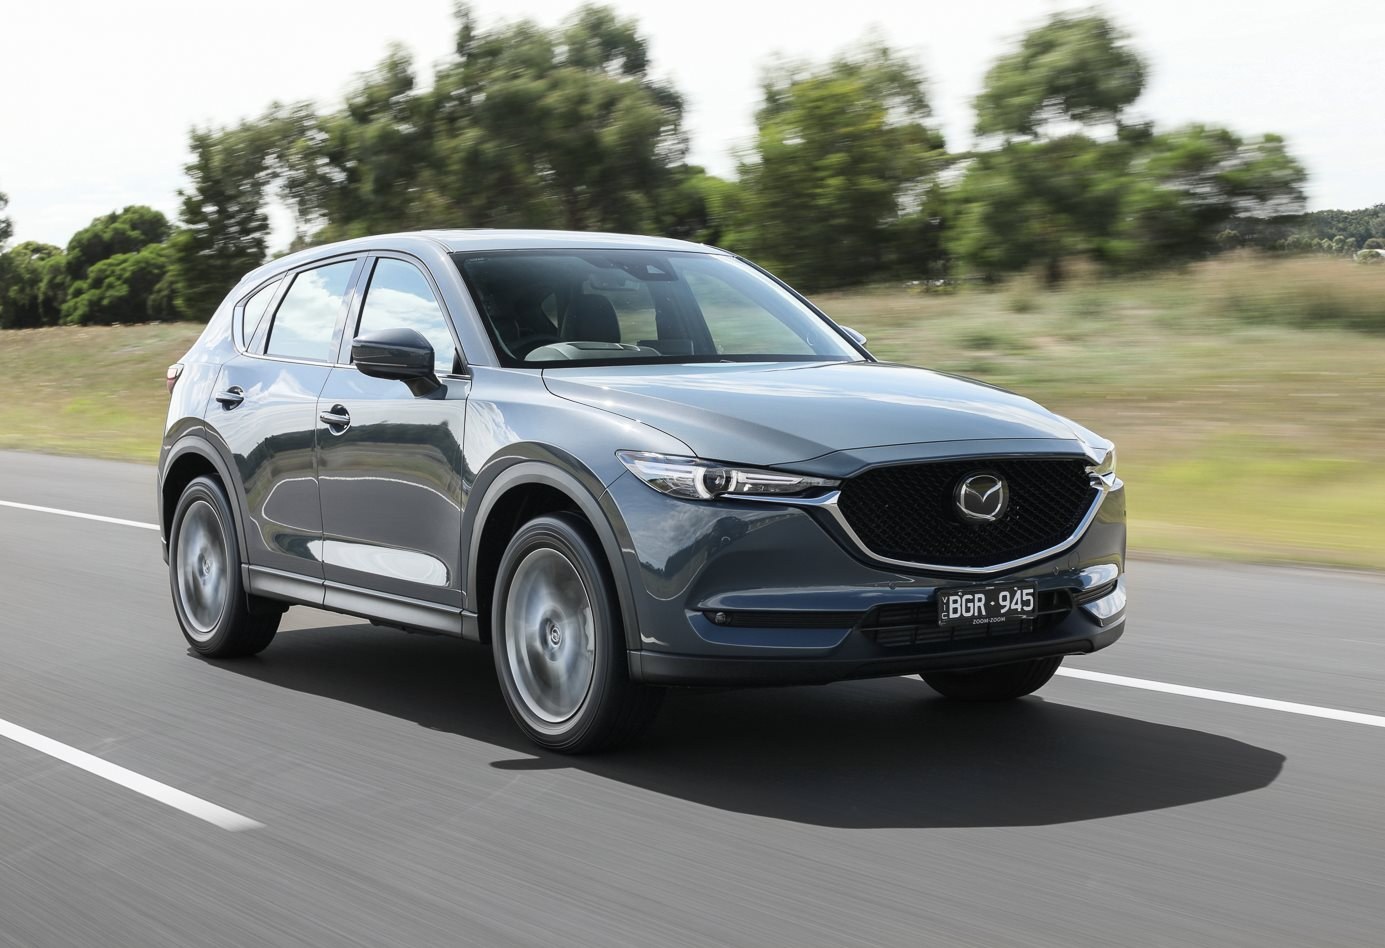 2020 Mazda CX-5 pricing update: quieter, safer and more off-road capability